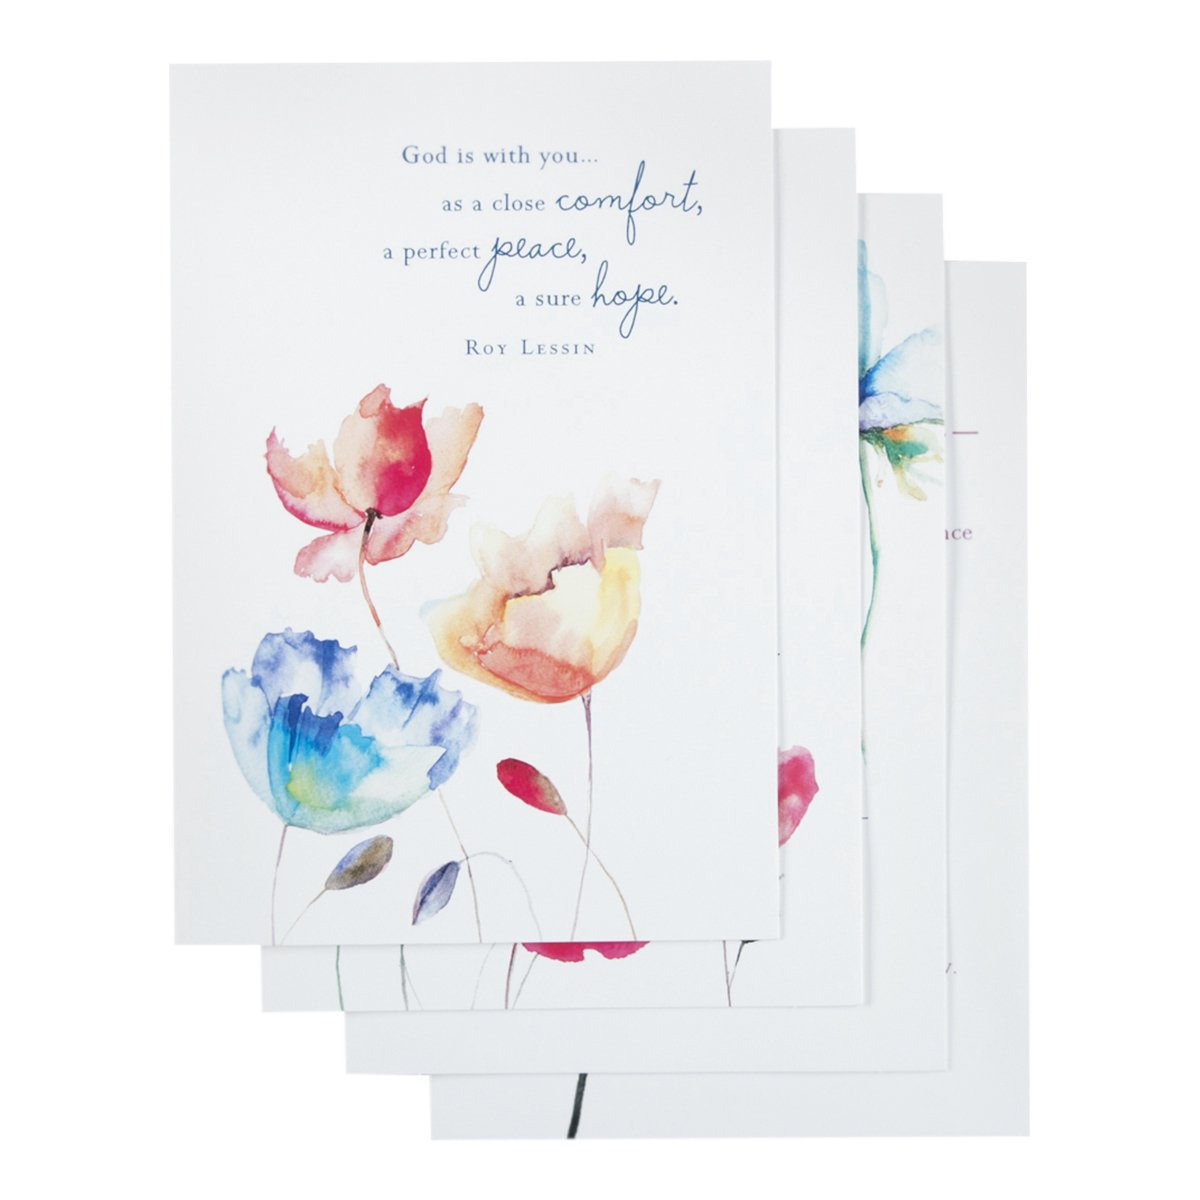 DaySpring Praying for You Boxed Greeting Cards w Embossed Envelopes - Watercolor Prayers, 12 Count (77546) by Dayspring DaySpring Company